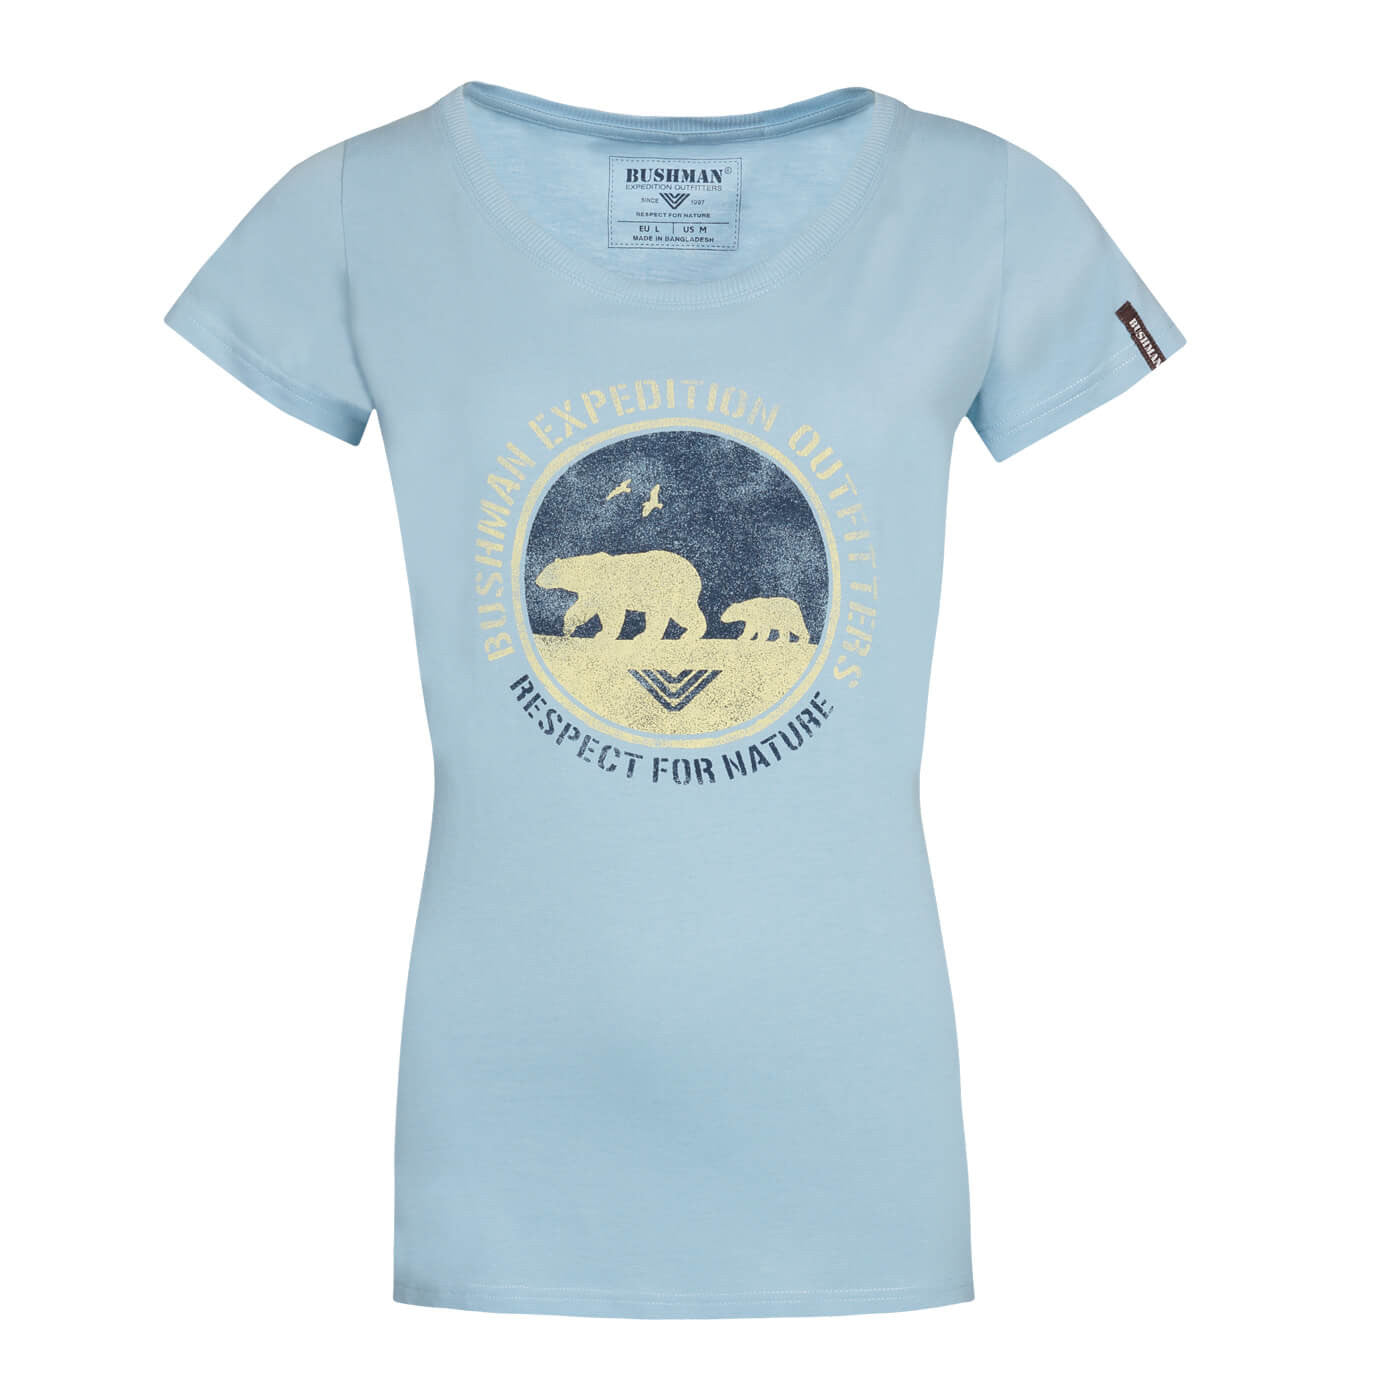 BUSHMANSHOP AMAYA WOMEN'S LIGHT BLUE POLAR BEAR COTTON SHORT SLEEVE T-SHIRT